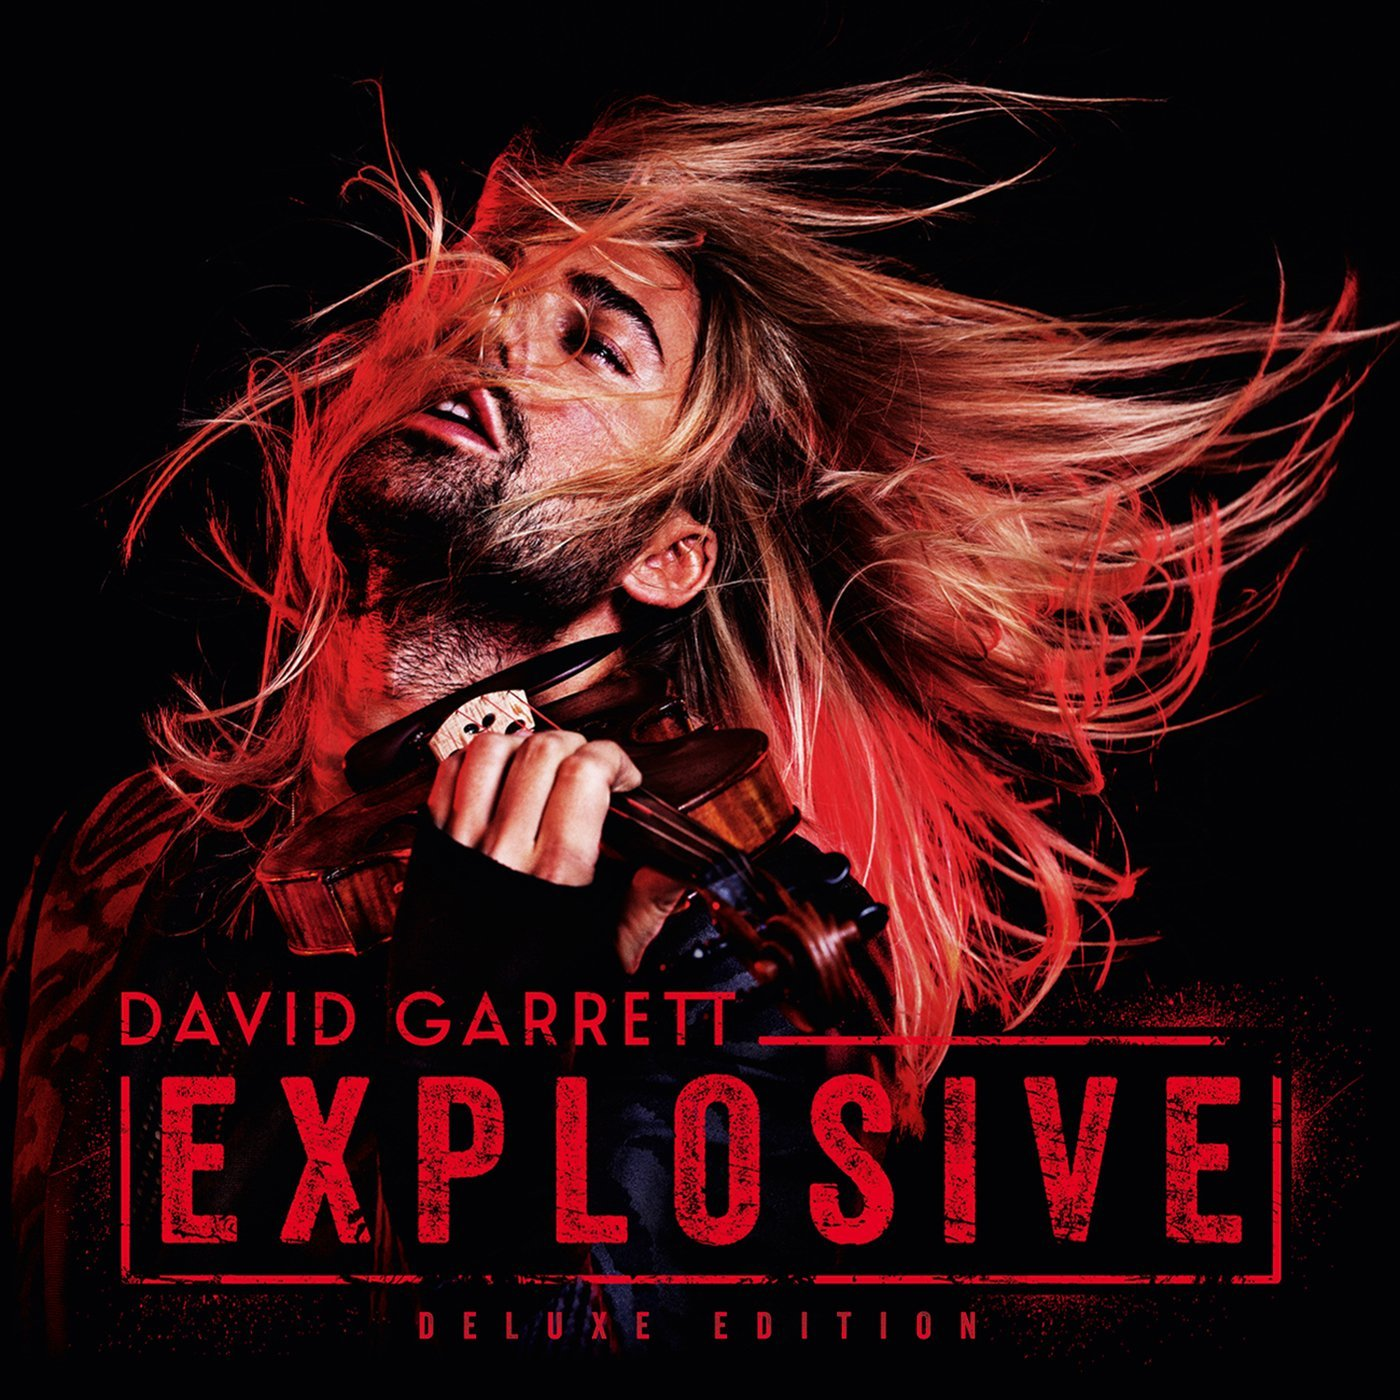 DAVID GARRETT - EXPLOSIVE (CD)